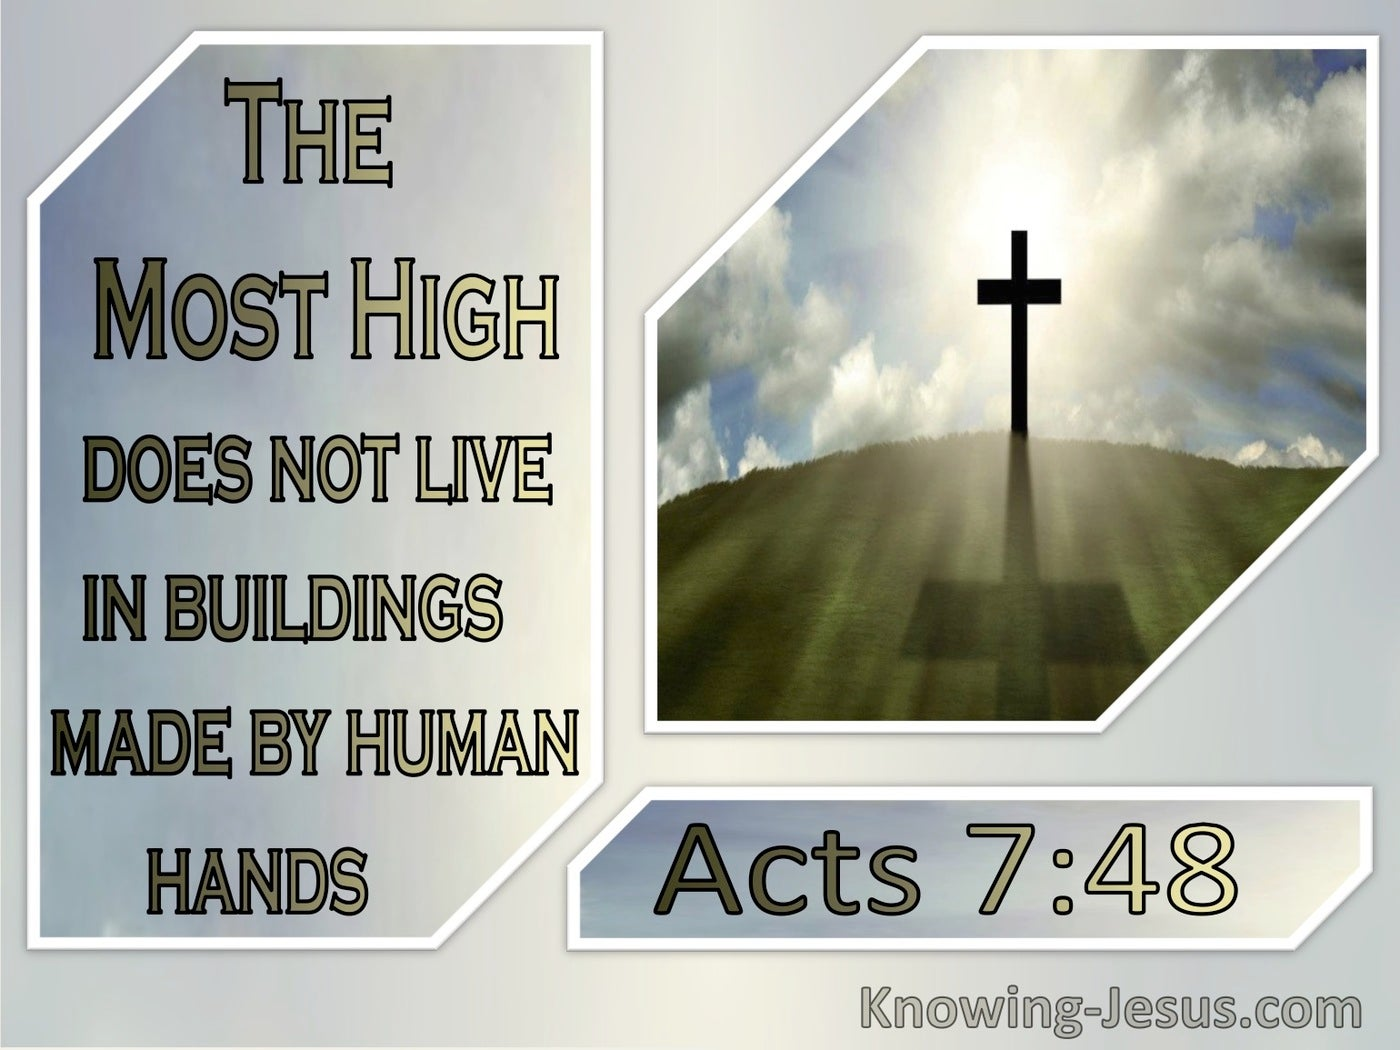 Acts 7:48 The Most High Does Not Live In Buildings Made By Human Hands (windows)09:04